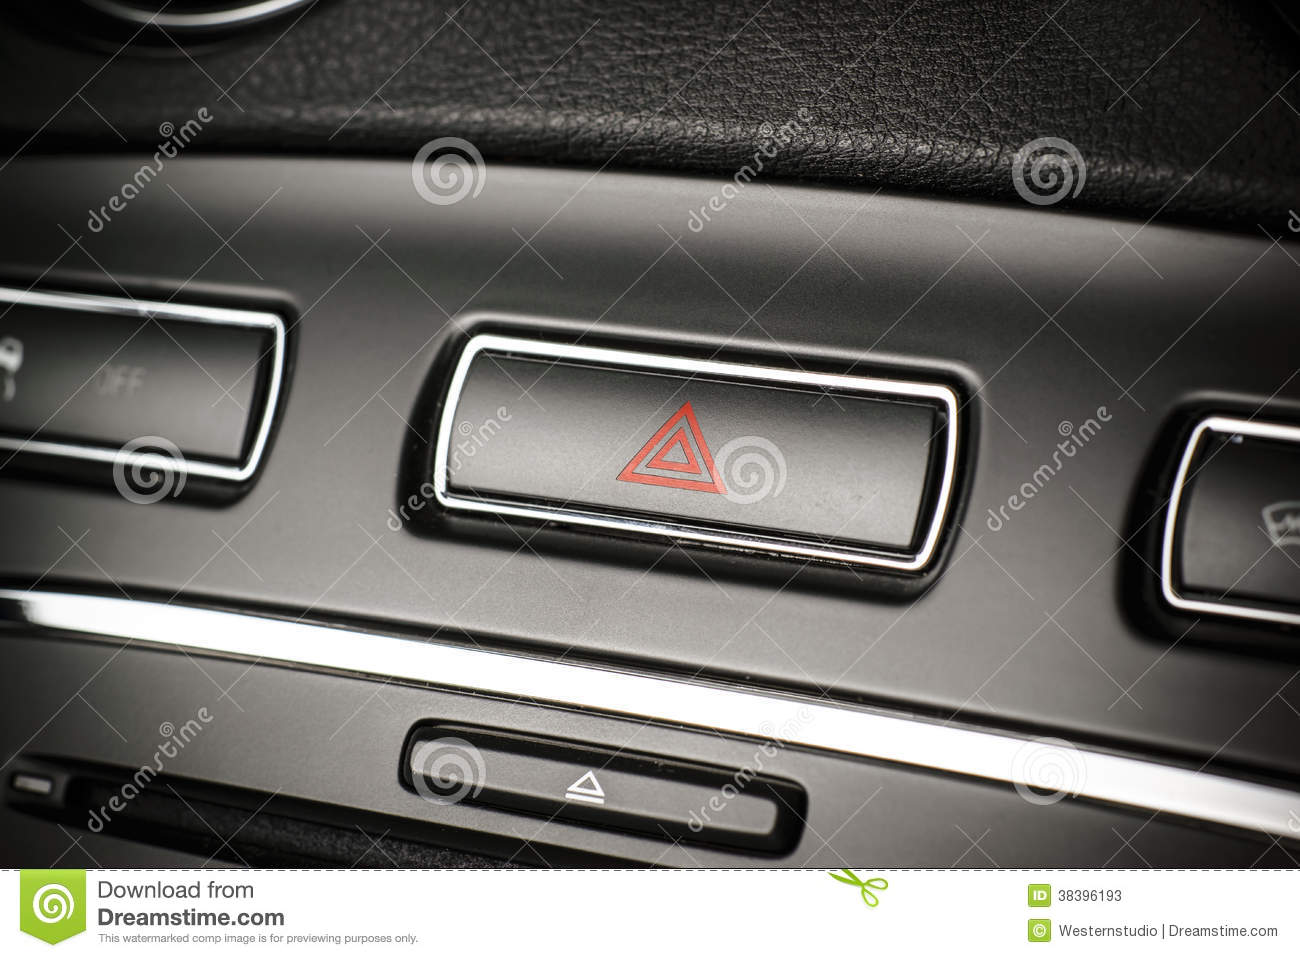 Vehicle, car hazard warning flashers button with visible red tri